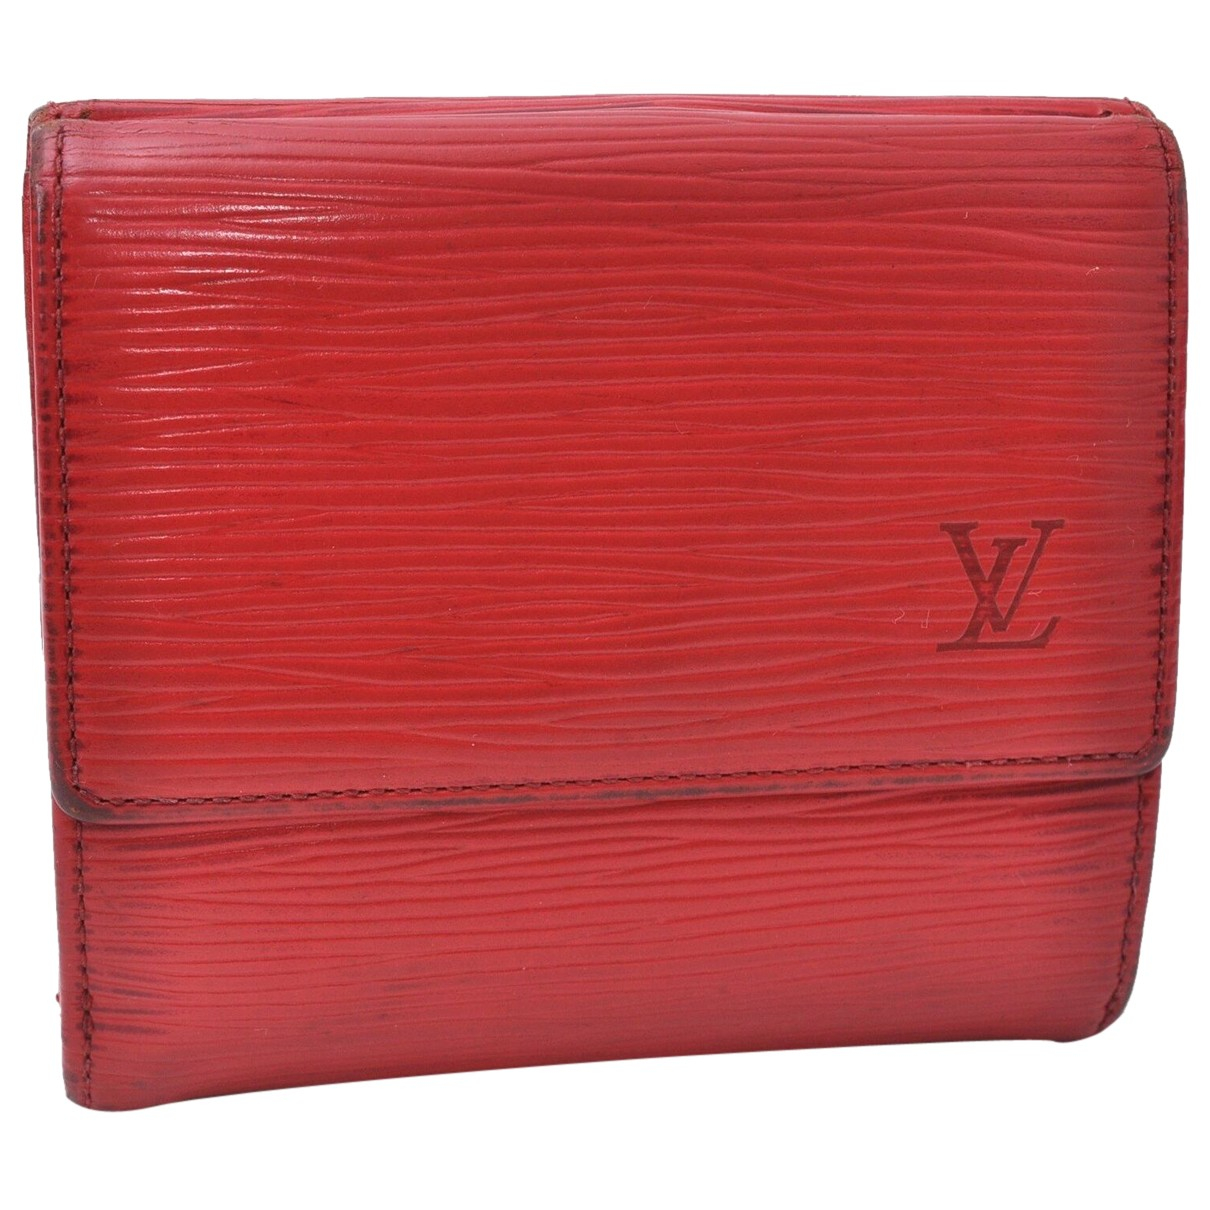 Louis Vuitton N Red Leather wallet for Women N